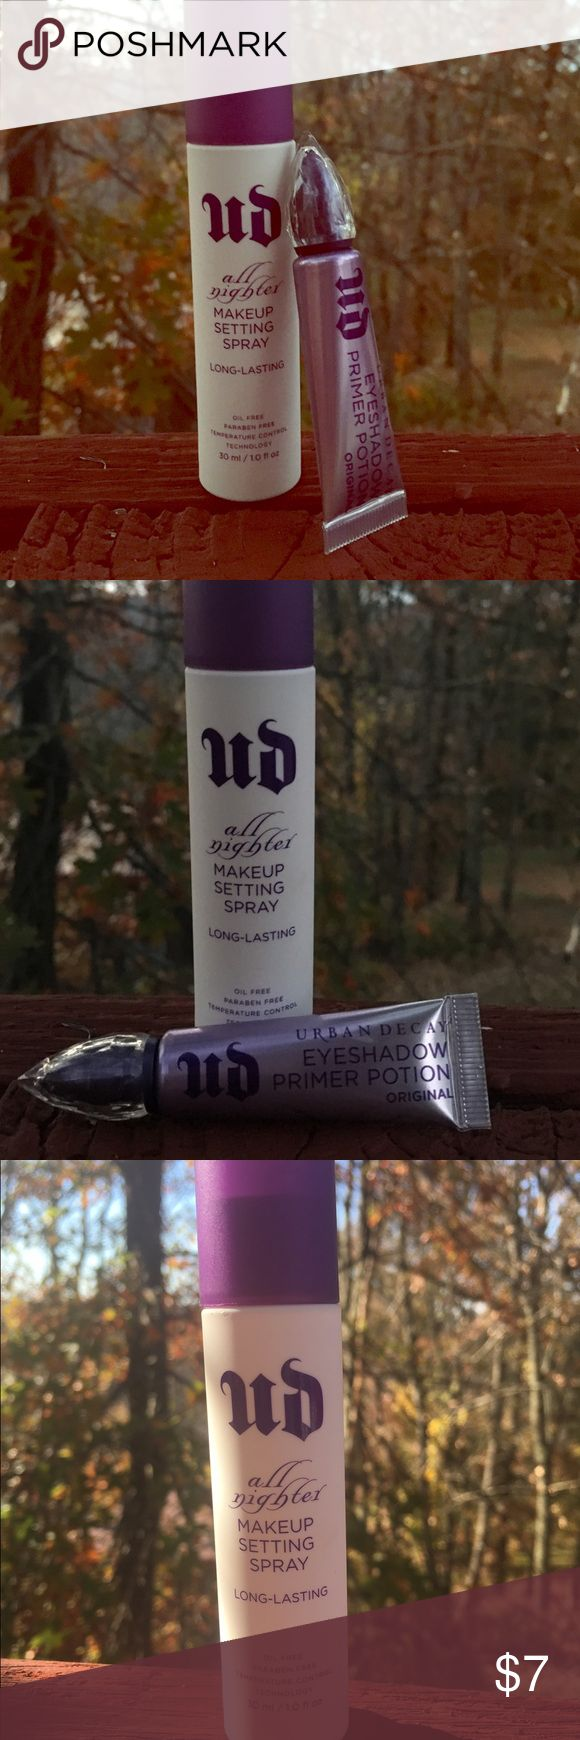 Urban Decay Travel Duo Urban Decay All Nighter Makeup Setting Spray in 30 ml/1.0 fl oz & Urban Decay Eyeshadow Primer Potion in 5 ml/0.16 fl oz. I bought at Sephora in August 2016 for a wedding and only used once. Urban Decay Makeup Face Primer